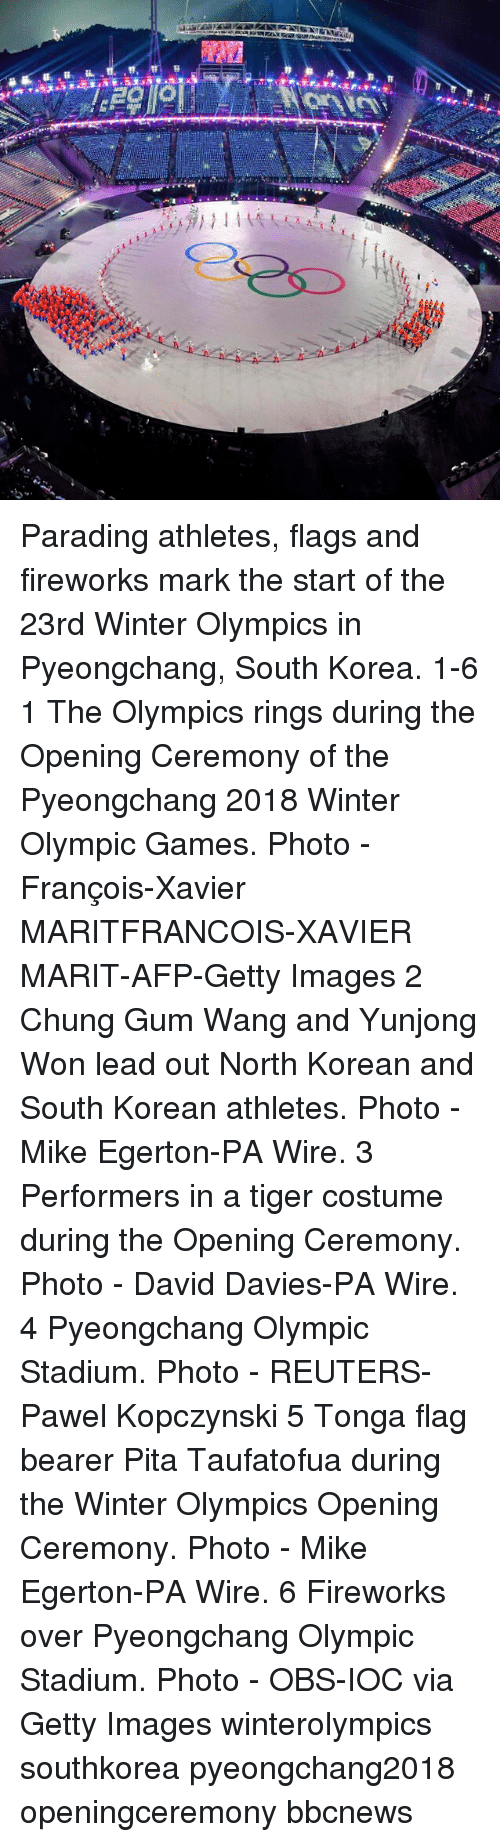 Memes, Winter, and Fireworks: Parading athletes, flags and fireworks mark the start of the 23rd Winter Olympics in Pyeongchang, South Korea. 1-6 1 The Olympics rings during the Opening Ceremony of the Pyeongchang 2018 Winter Olympic Games. Photo - François-Xavier MARITFRANCOIS-XAVIER MARIT-AFP-Getty Images 2 Chung Gum Wang and Yunjong Won lead out North Korean and South Korean athletes. Photo - Mike Egerton-PA Wire. 3 Performers in a tiger costume during the Opening Ceremony. Photo - David Davies-PA Wire. 4 Pyeongchang Olympic Stadium. Photo - REUTERS-Pawel Kopczynski 5 Tonga flag bearer Pita Taufatofua during the Winter Olympics Opening Ceremony. Photo - Mike Egerton-PA Wire. 6 Fireworks over Pyeongchang Olympic Stadium. Photo - OBS-IOC via Getty Images winterolympics southkorea pyeongchang2018 openingceremony bbcnews